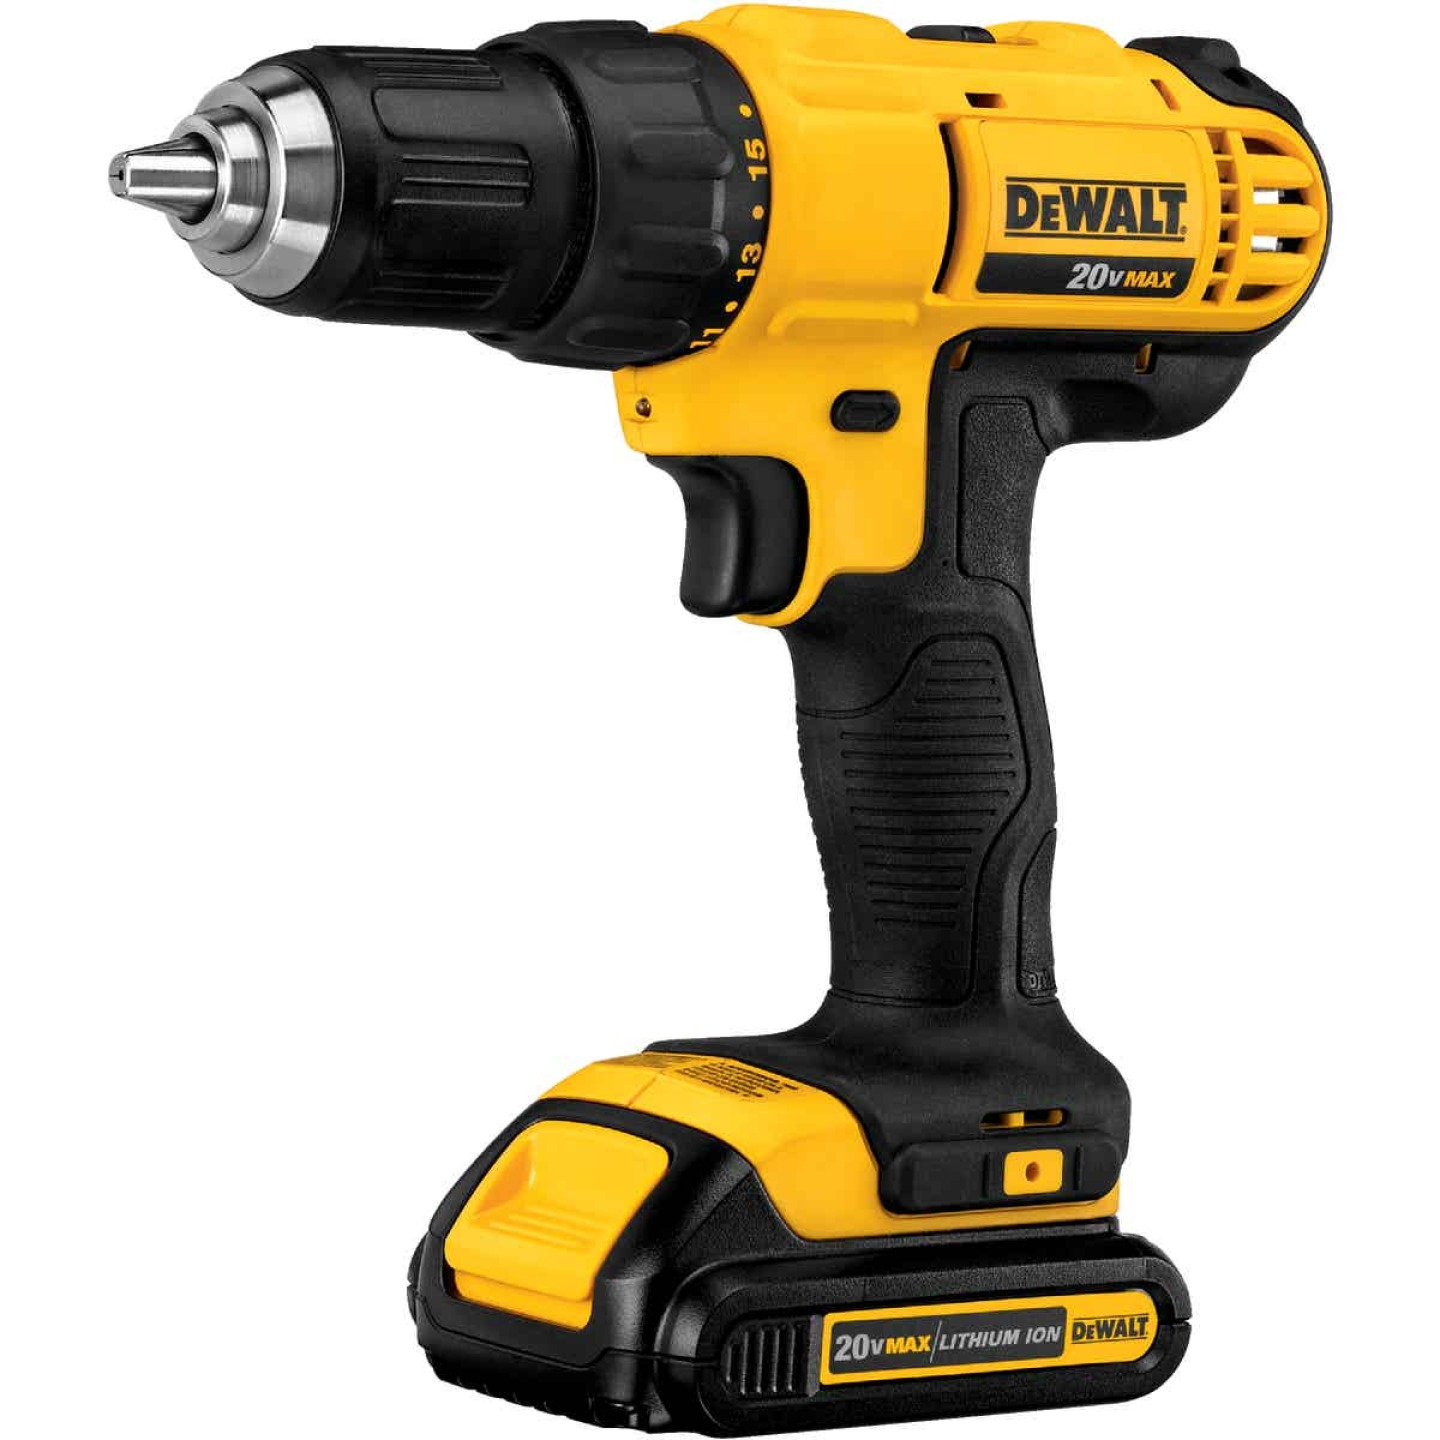 DeWalt 20 Volt MAX Lithium-Ion 1/2 In. Cordless Drill Kit Image 5